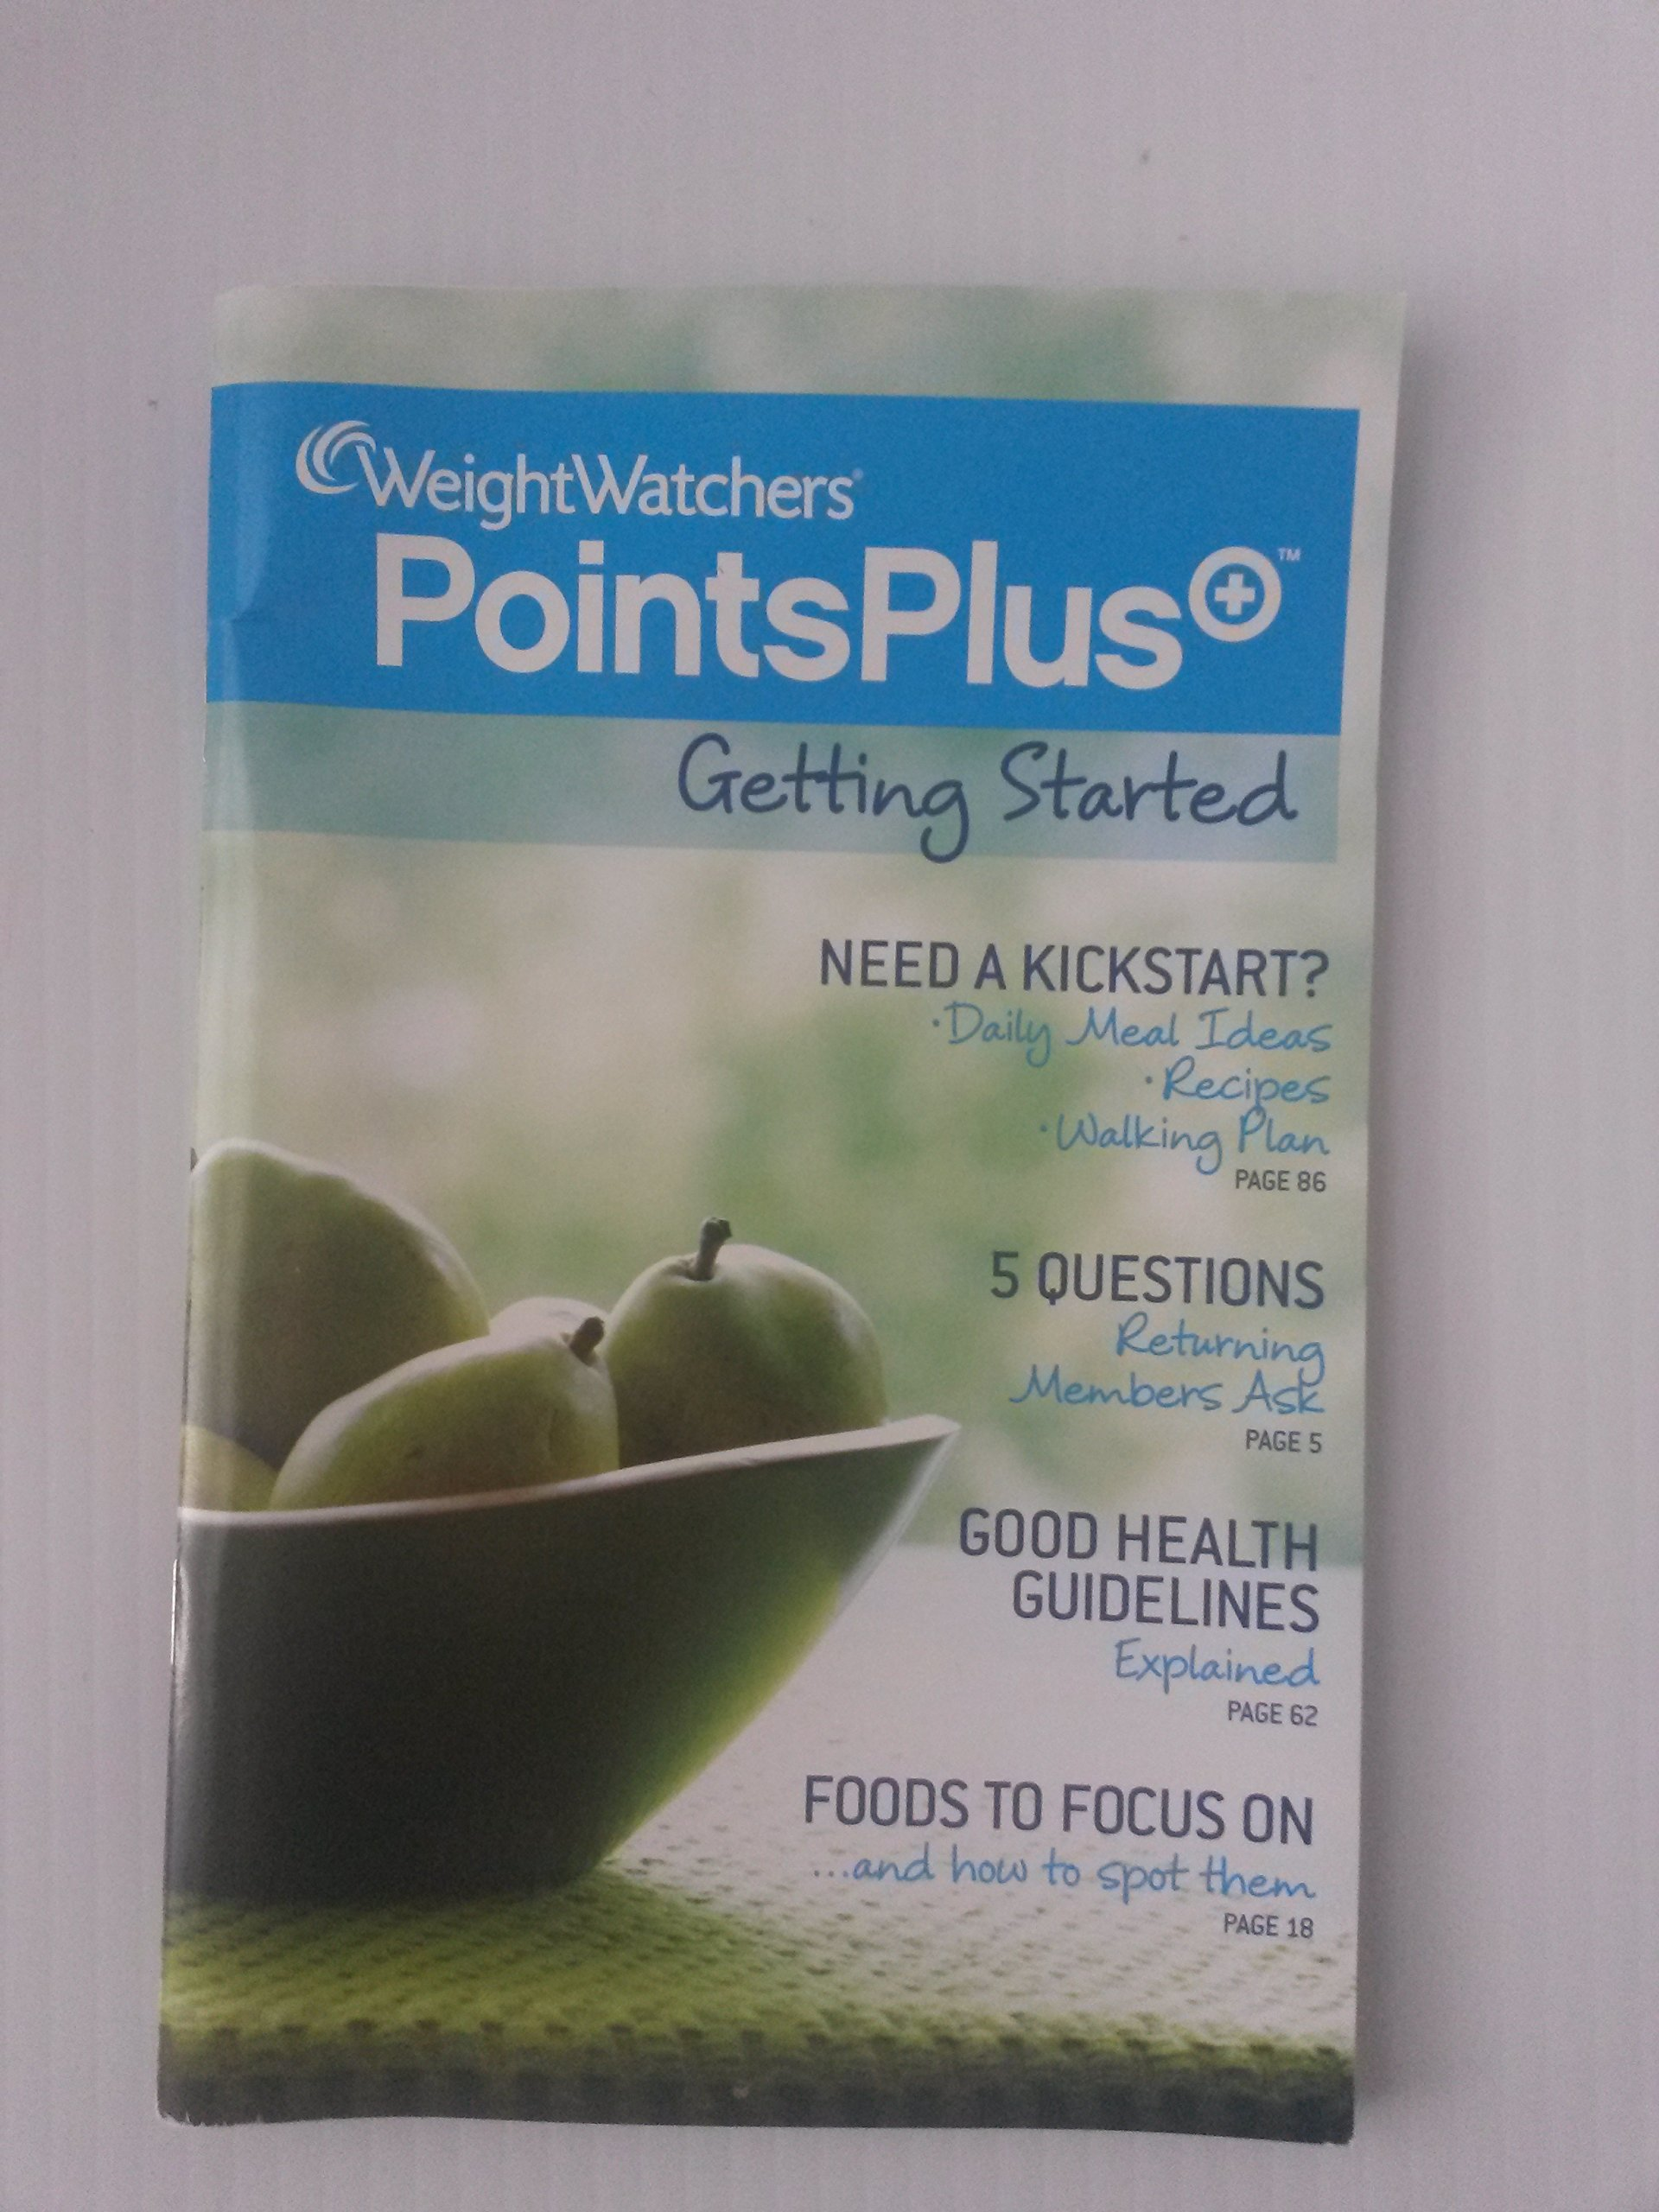 Weight watchers points plus getting started weight watchers weight watchers points plus getting started weight watchers amazon books nvjuhfo Images